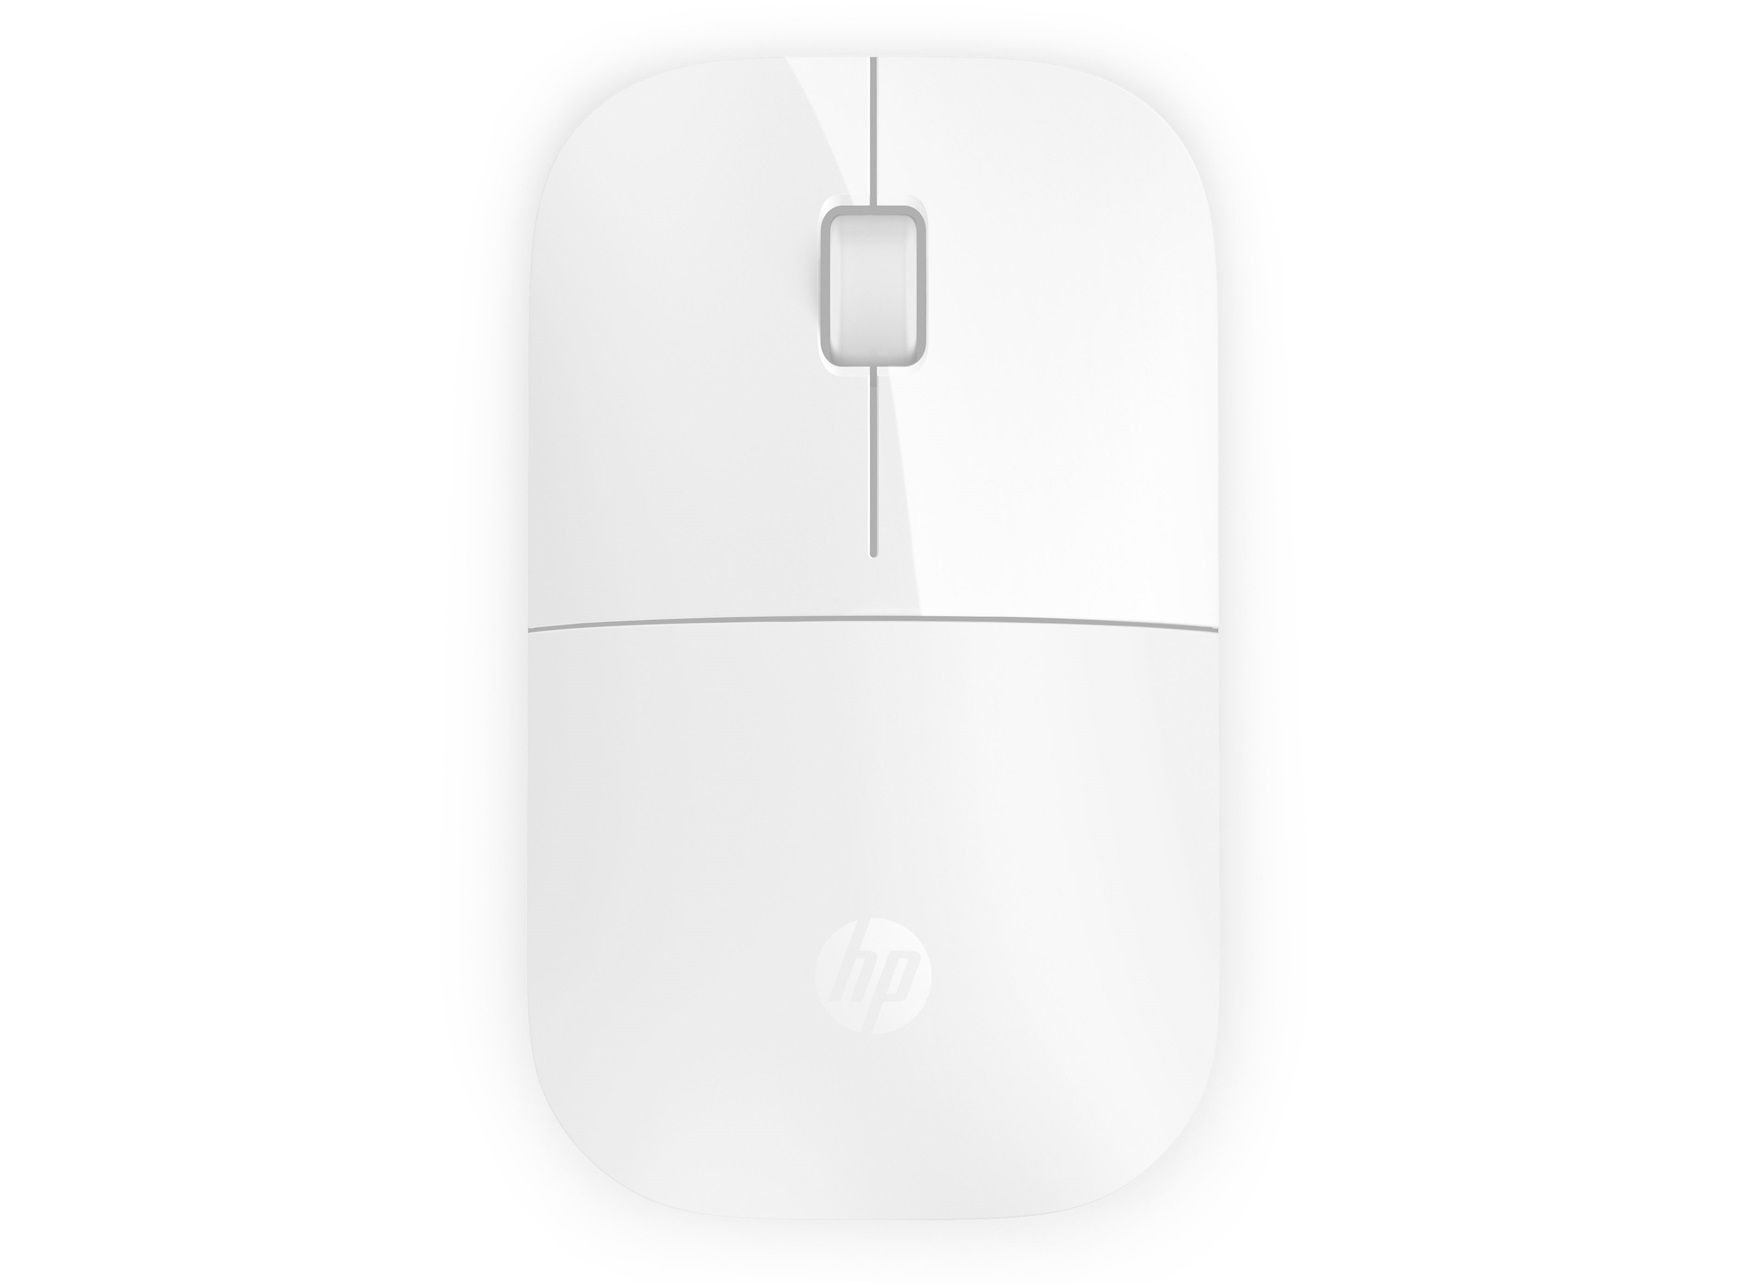 Ver HP Z3700 RF inalambrico Optico 1200DPI Color blanco Ambidextro